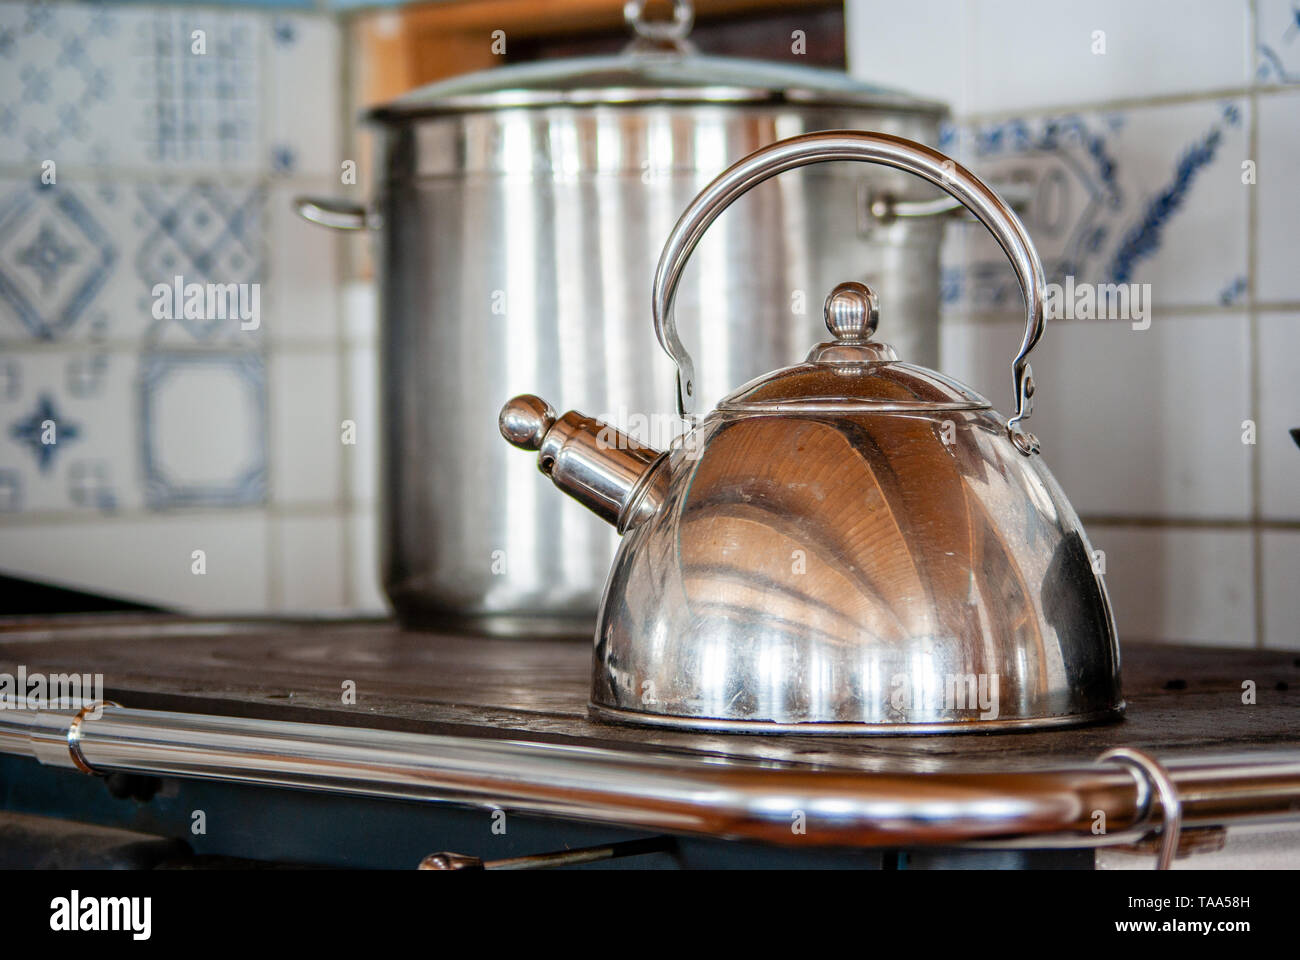 pot and kettle on the wood fired stove - Stock Image